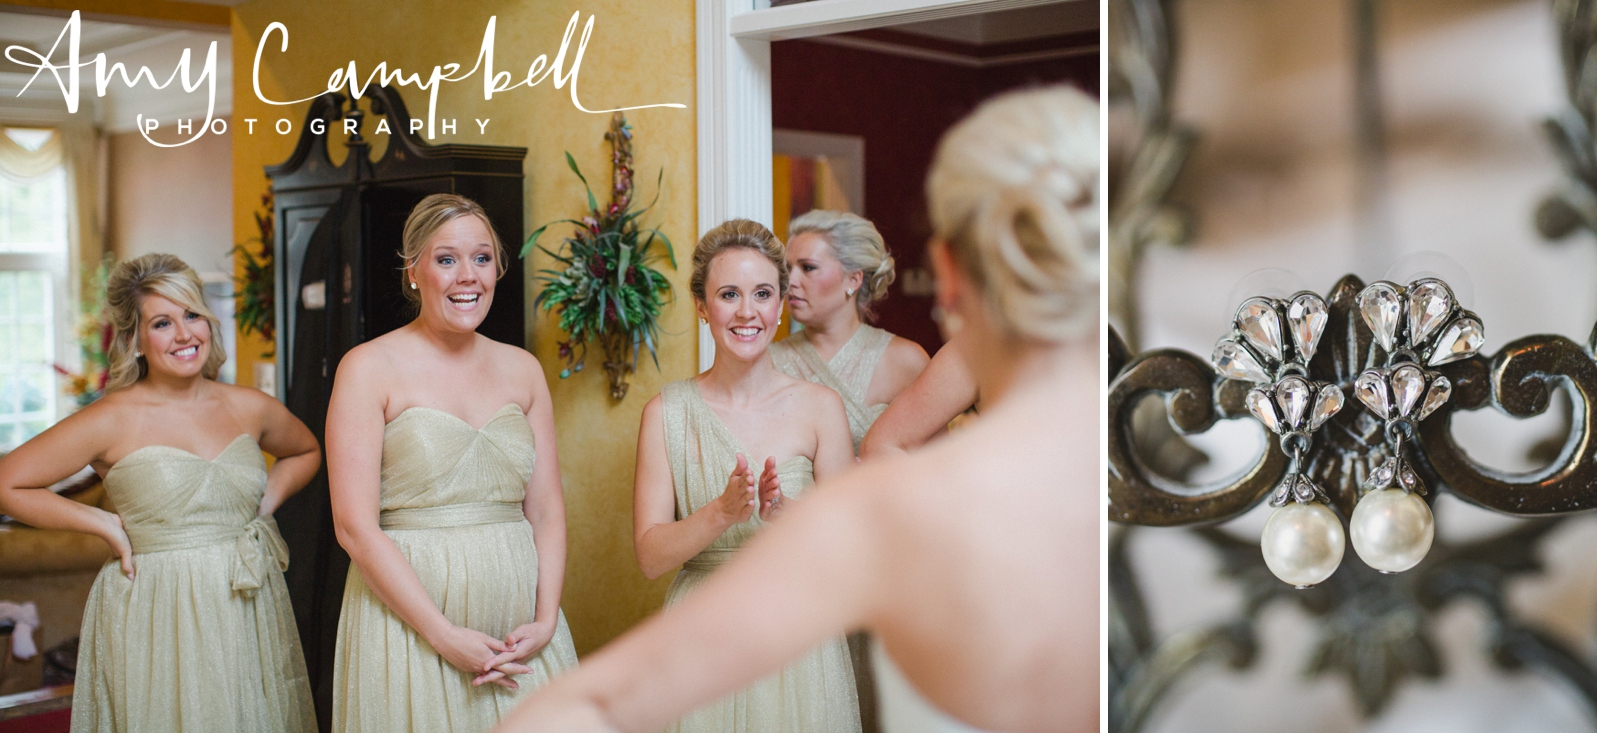 chelseamike_wedss_pics_amycampbellphotography_014.jpg